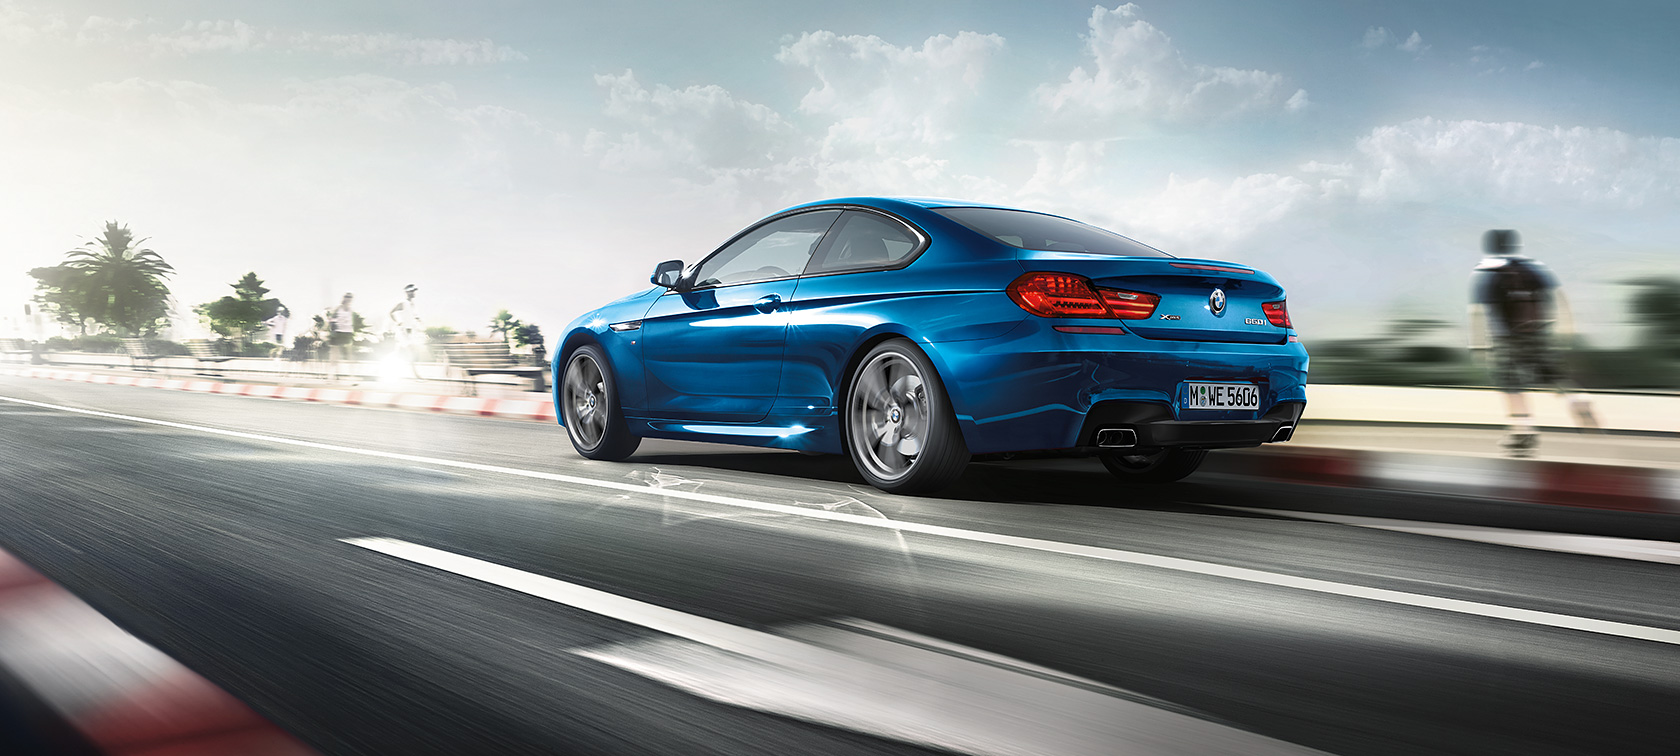 Driving Dynamics & Efficiency of the BMW 6 Series Coupé